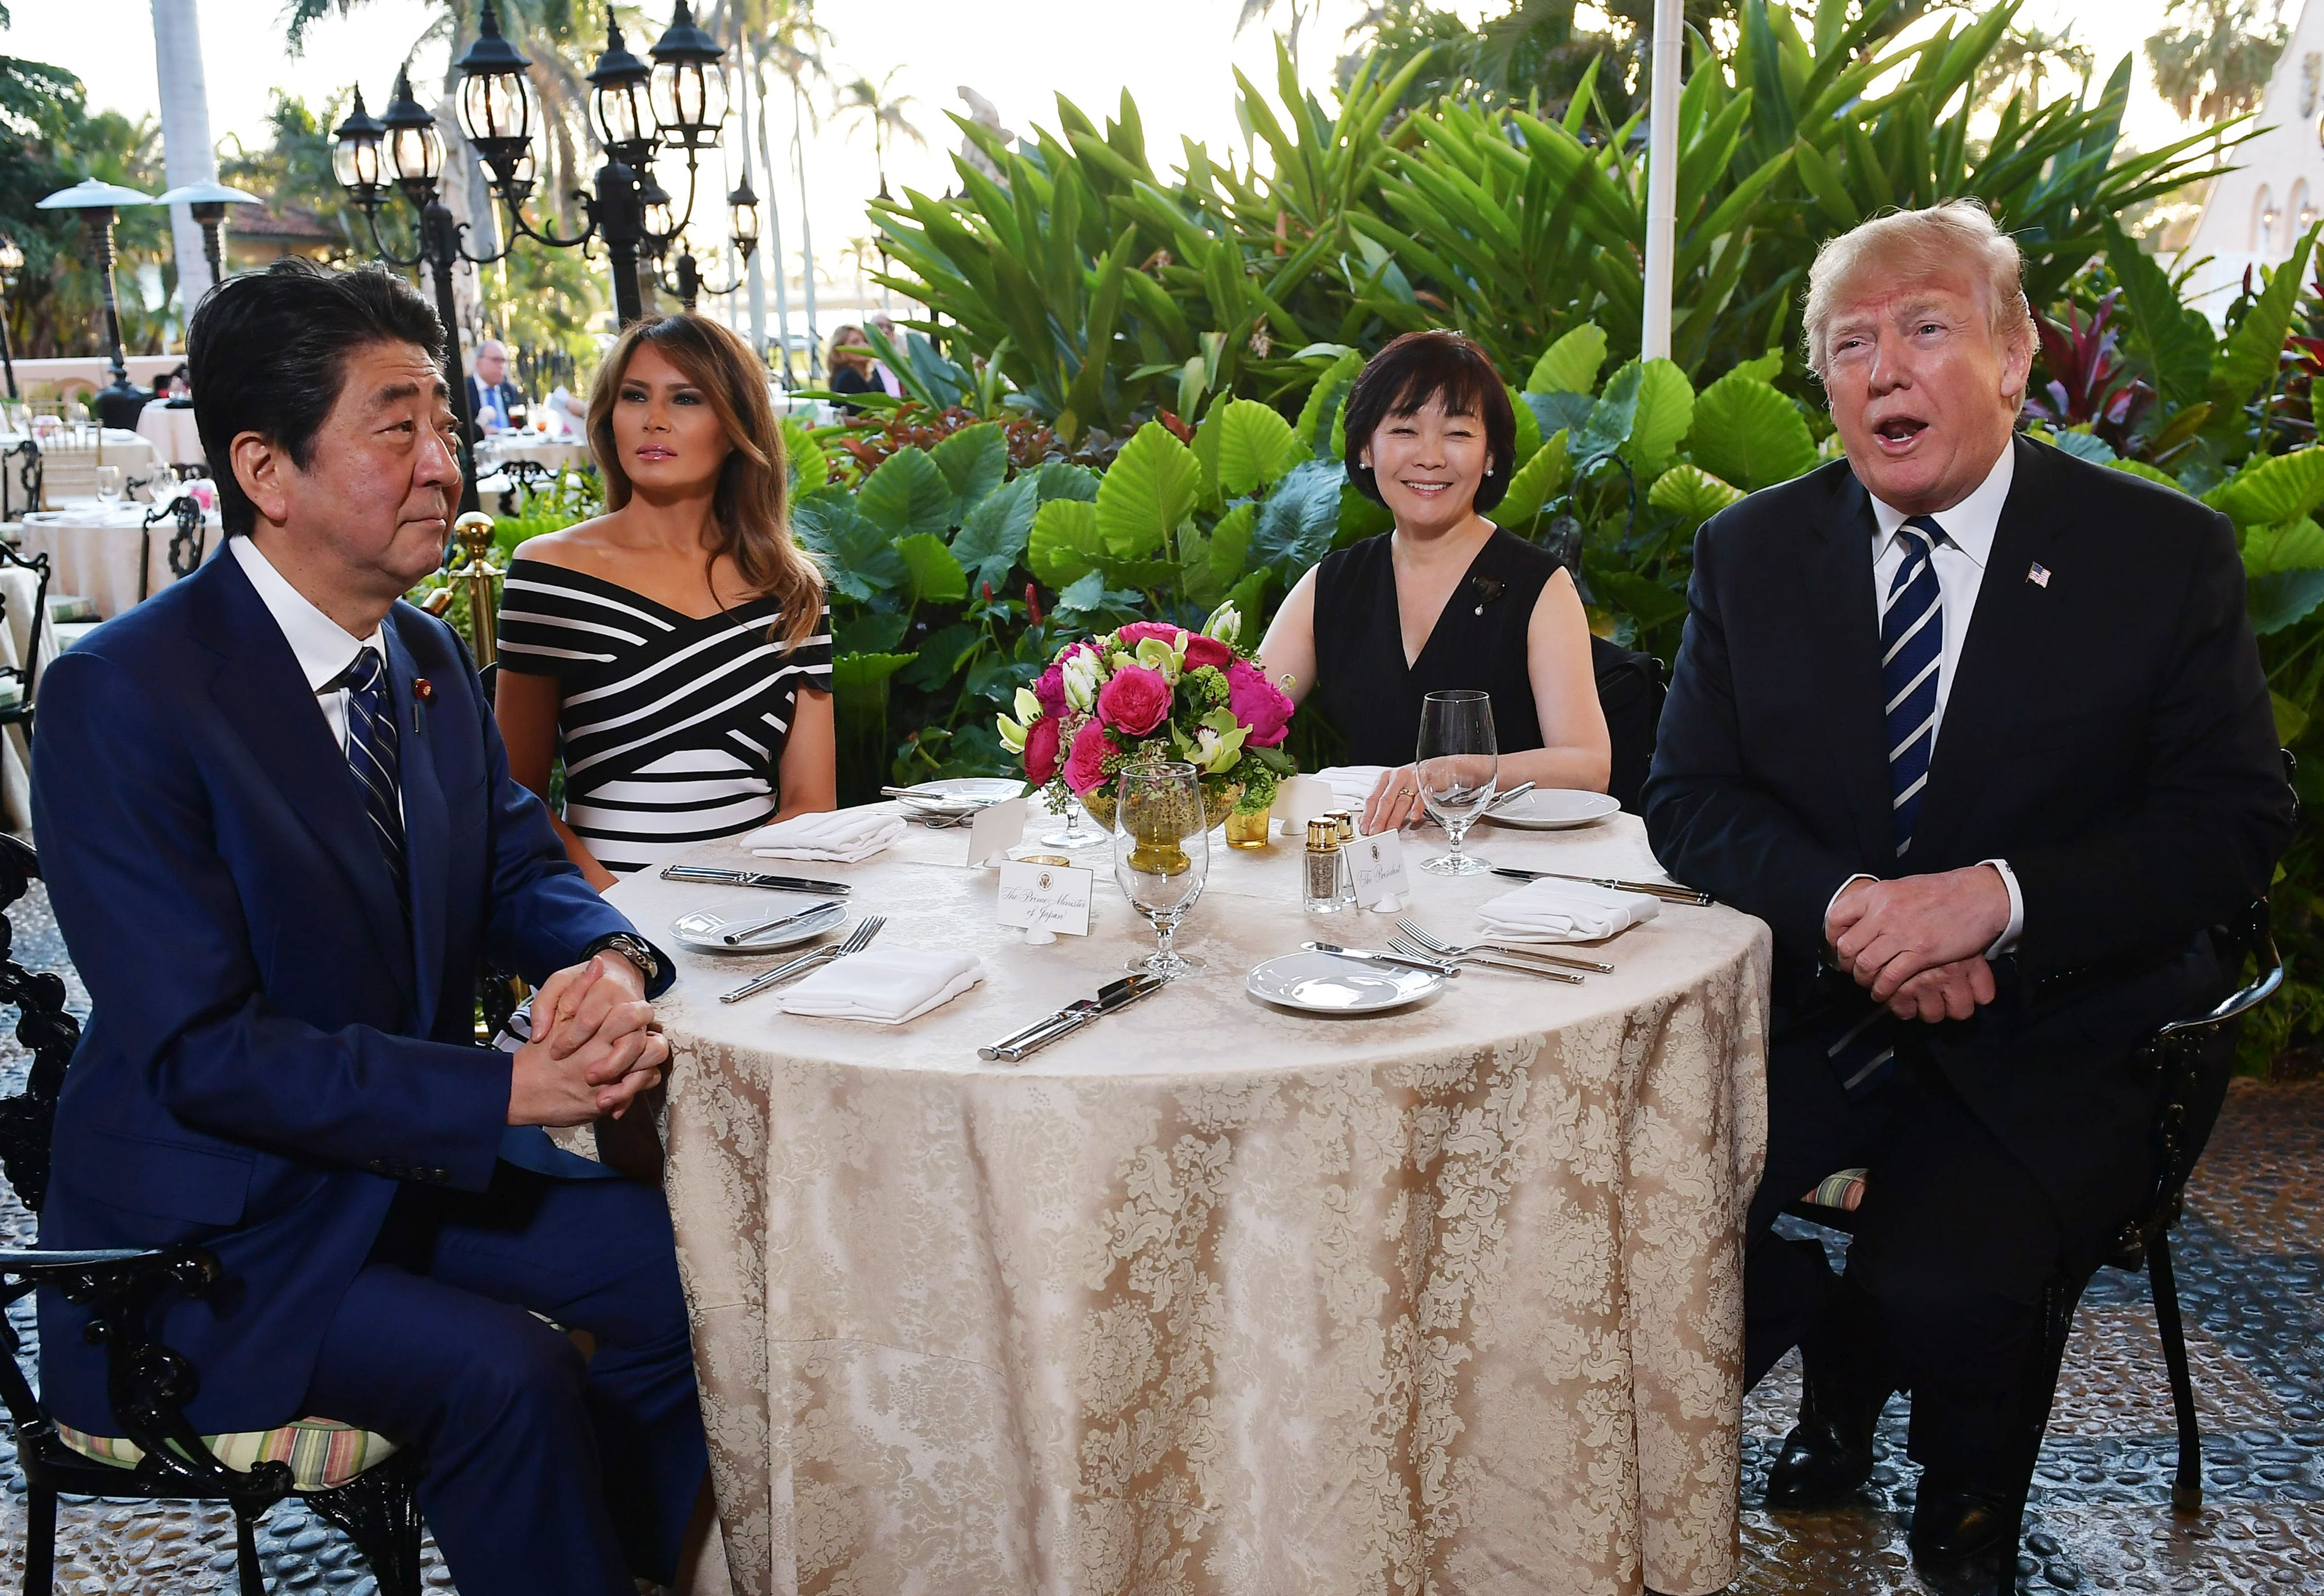 a8d445a9e573 Donald Trump s Trips to Mar-A-Lago 2018 - How Many Times Has Trump Been to  His Palm Beach Estate